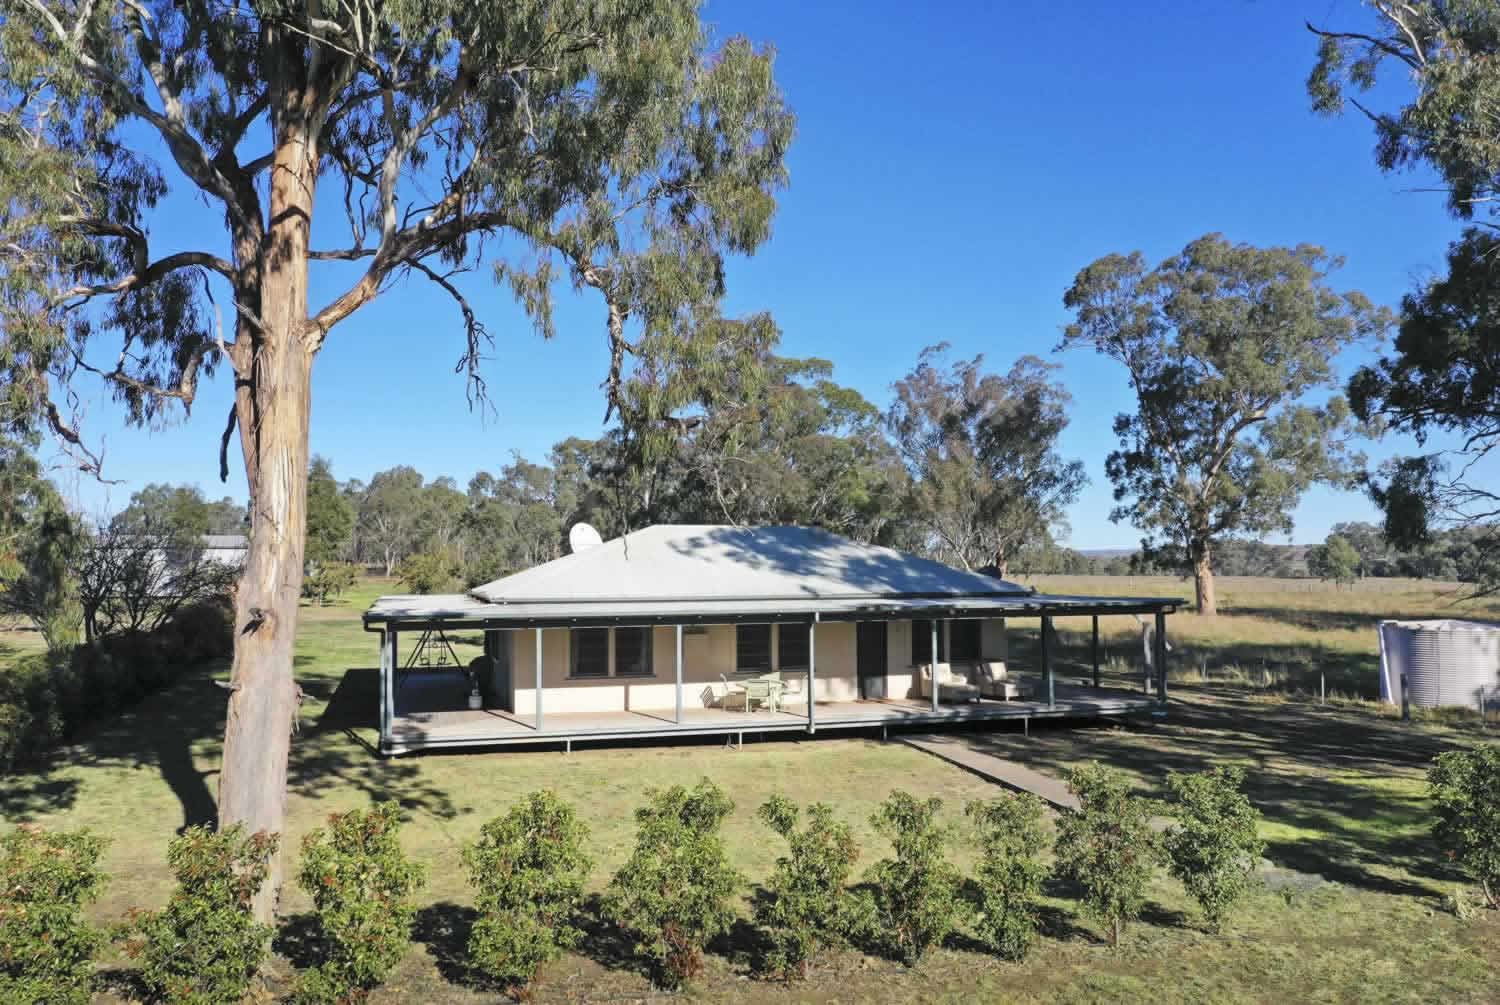 Property for Sale Hunter Valley NSW - Gibbergunyah